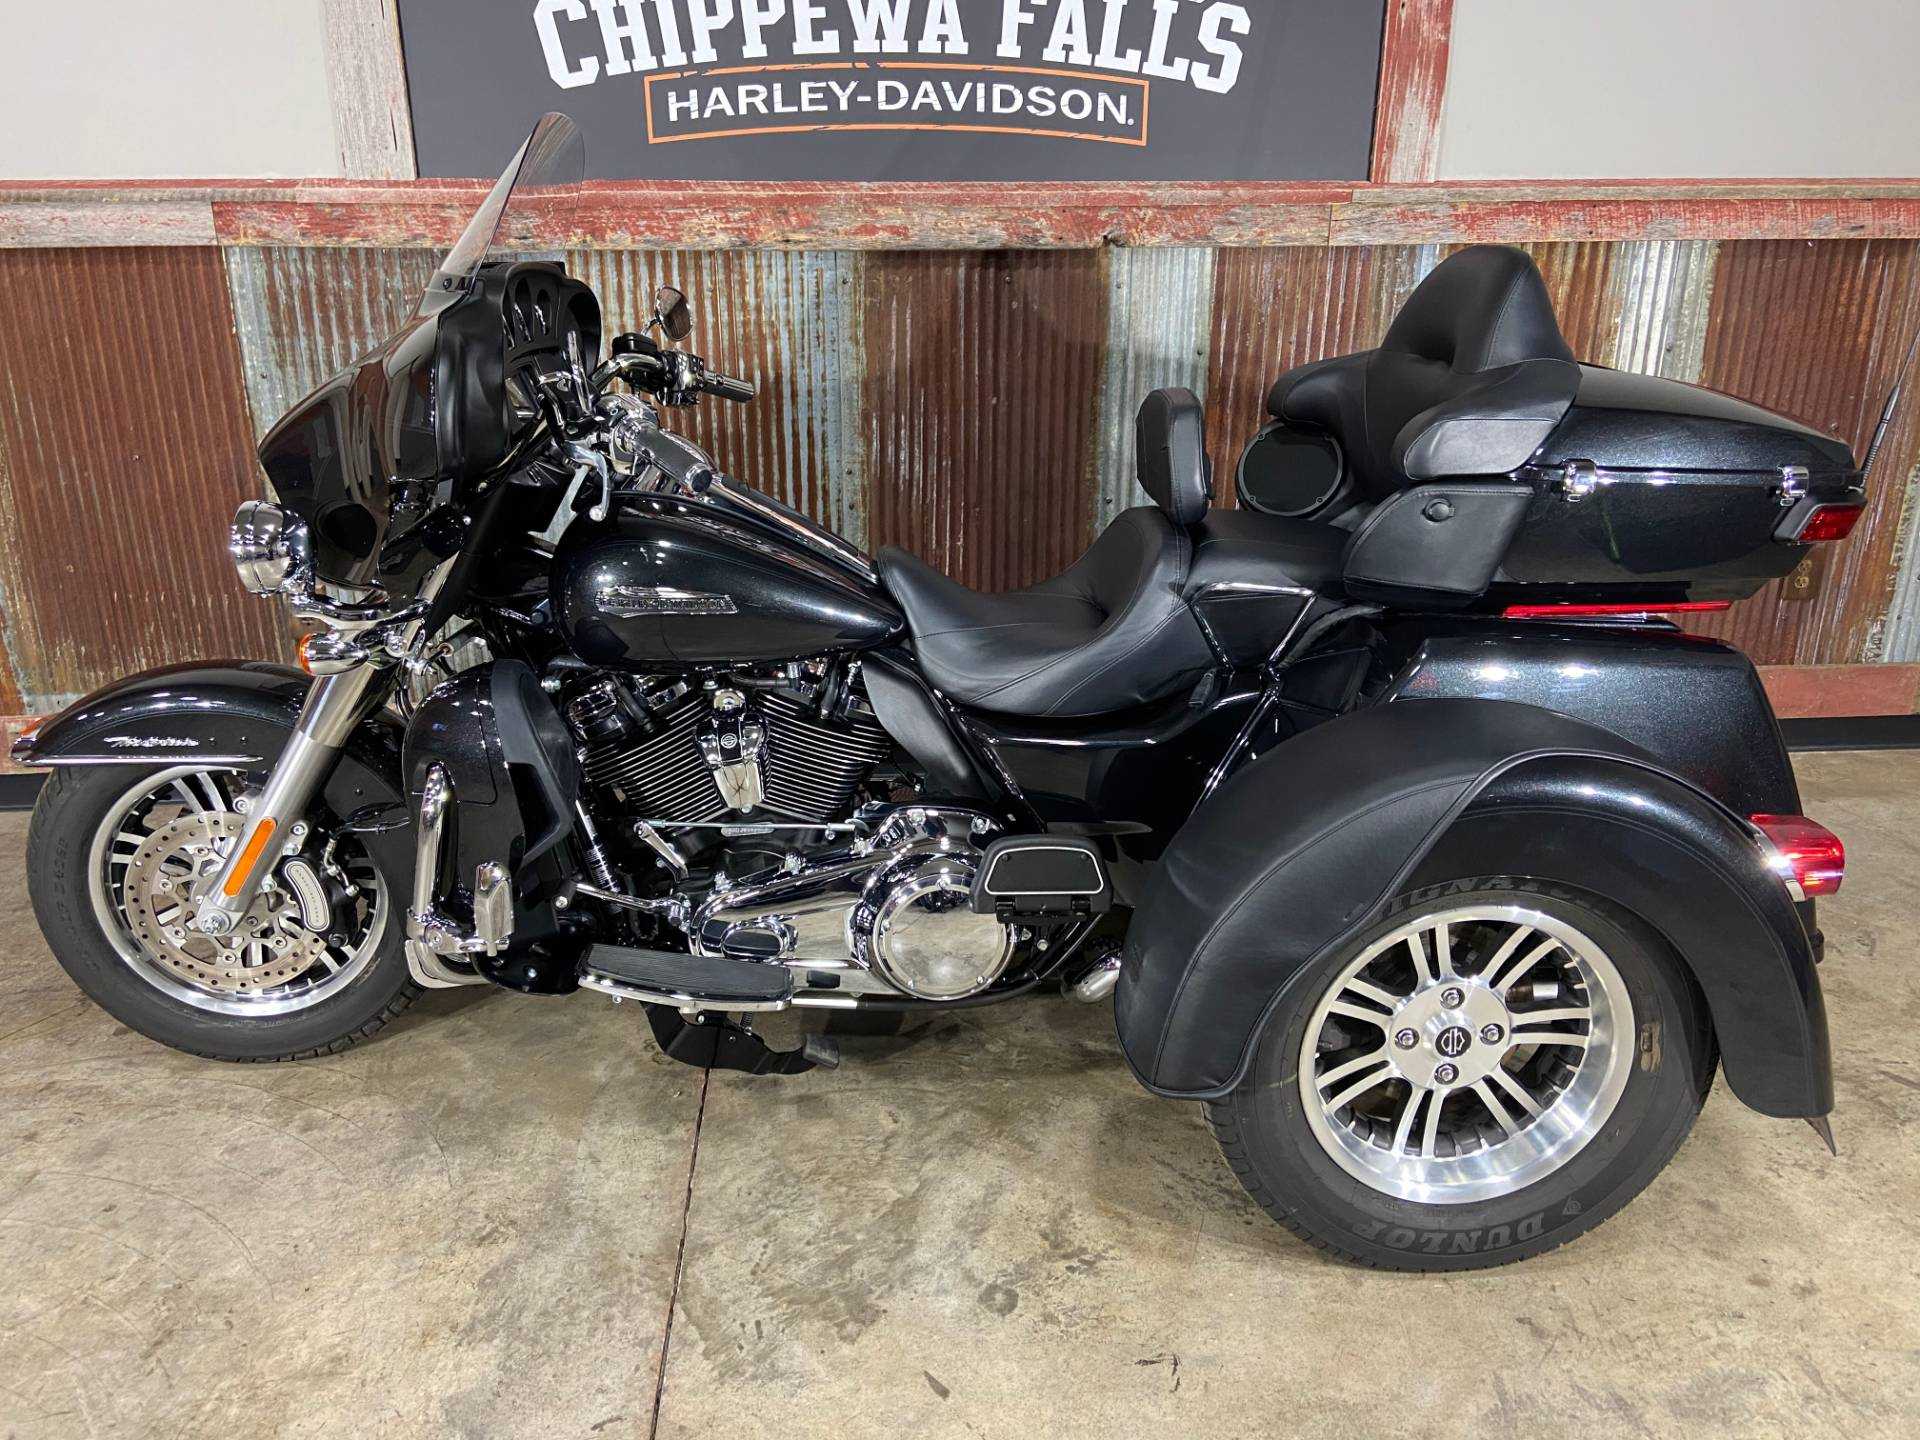 2018 Harley-Davidson Tri Glide® Ultra in Chippewa Falls, Wisconsin - Photo 8